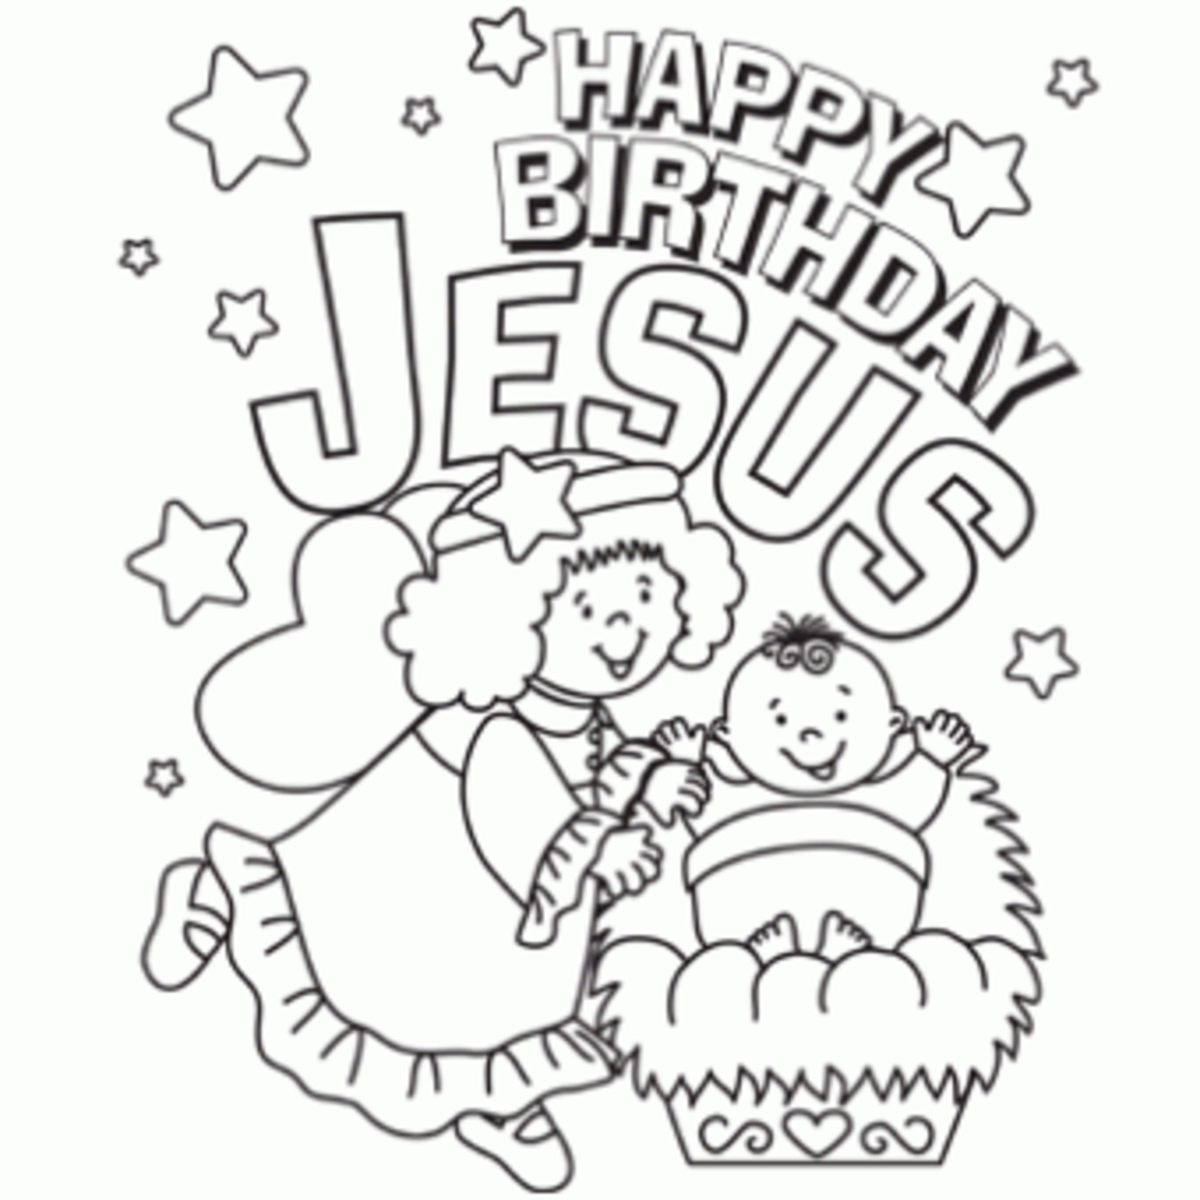 Happy Birthday Jesus Clip Art | hubpages